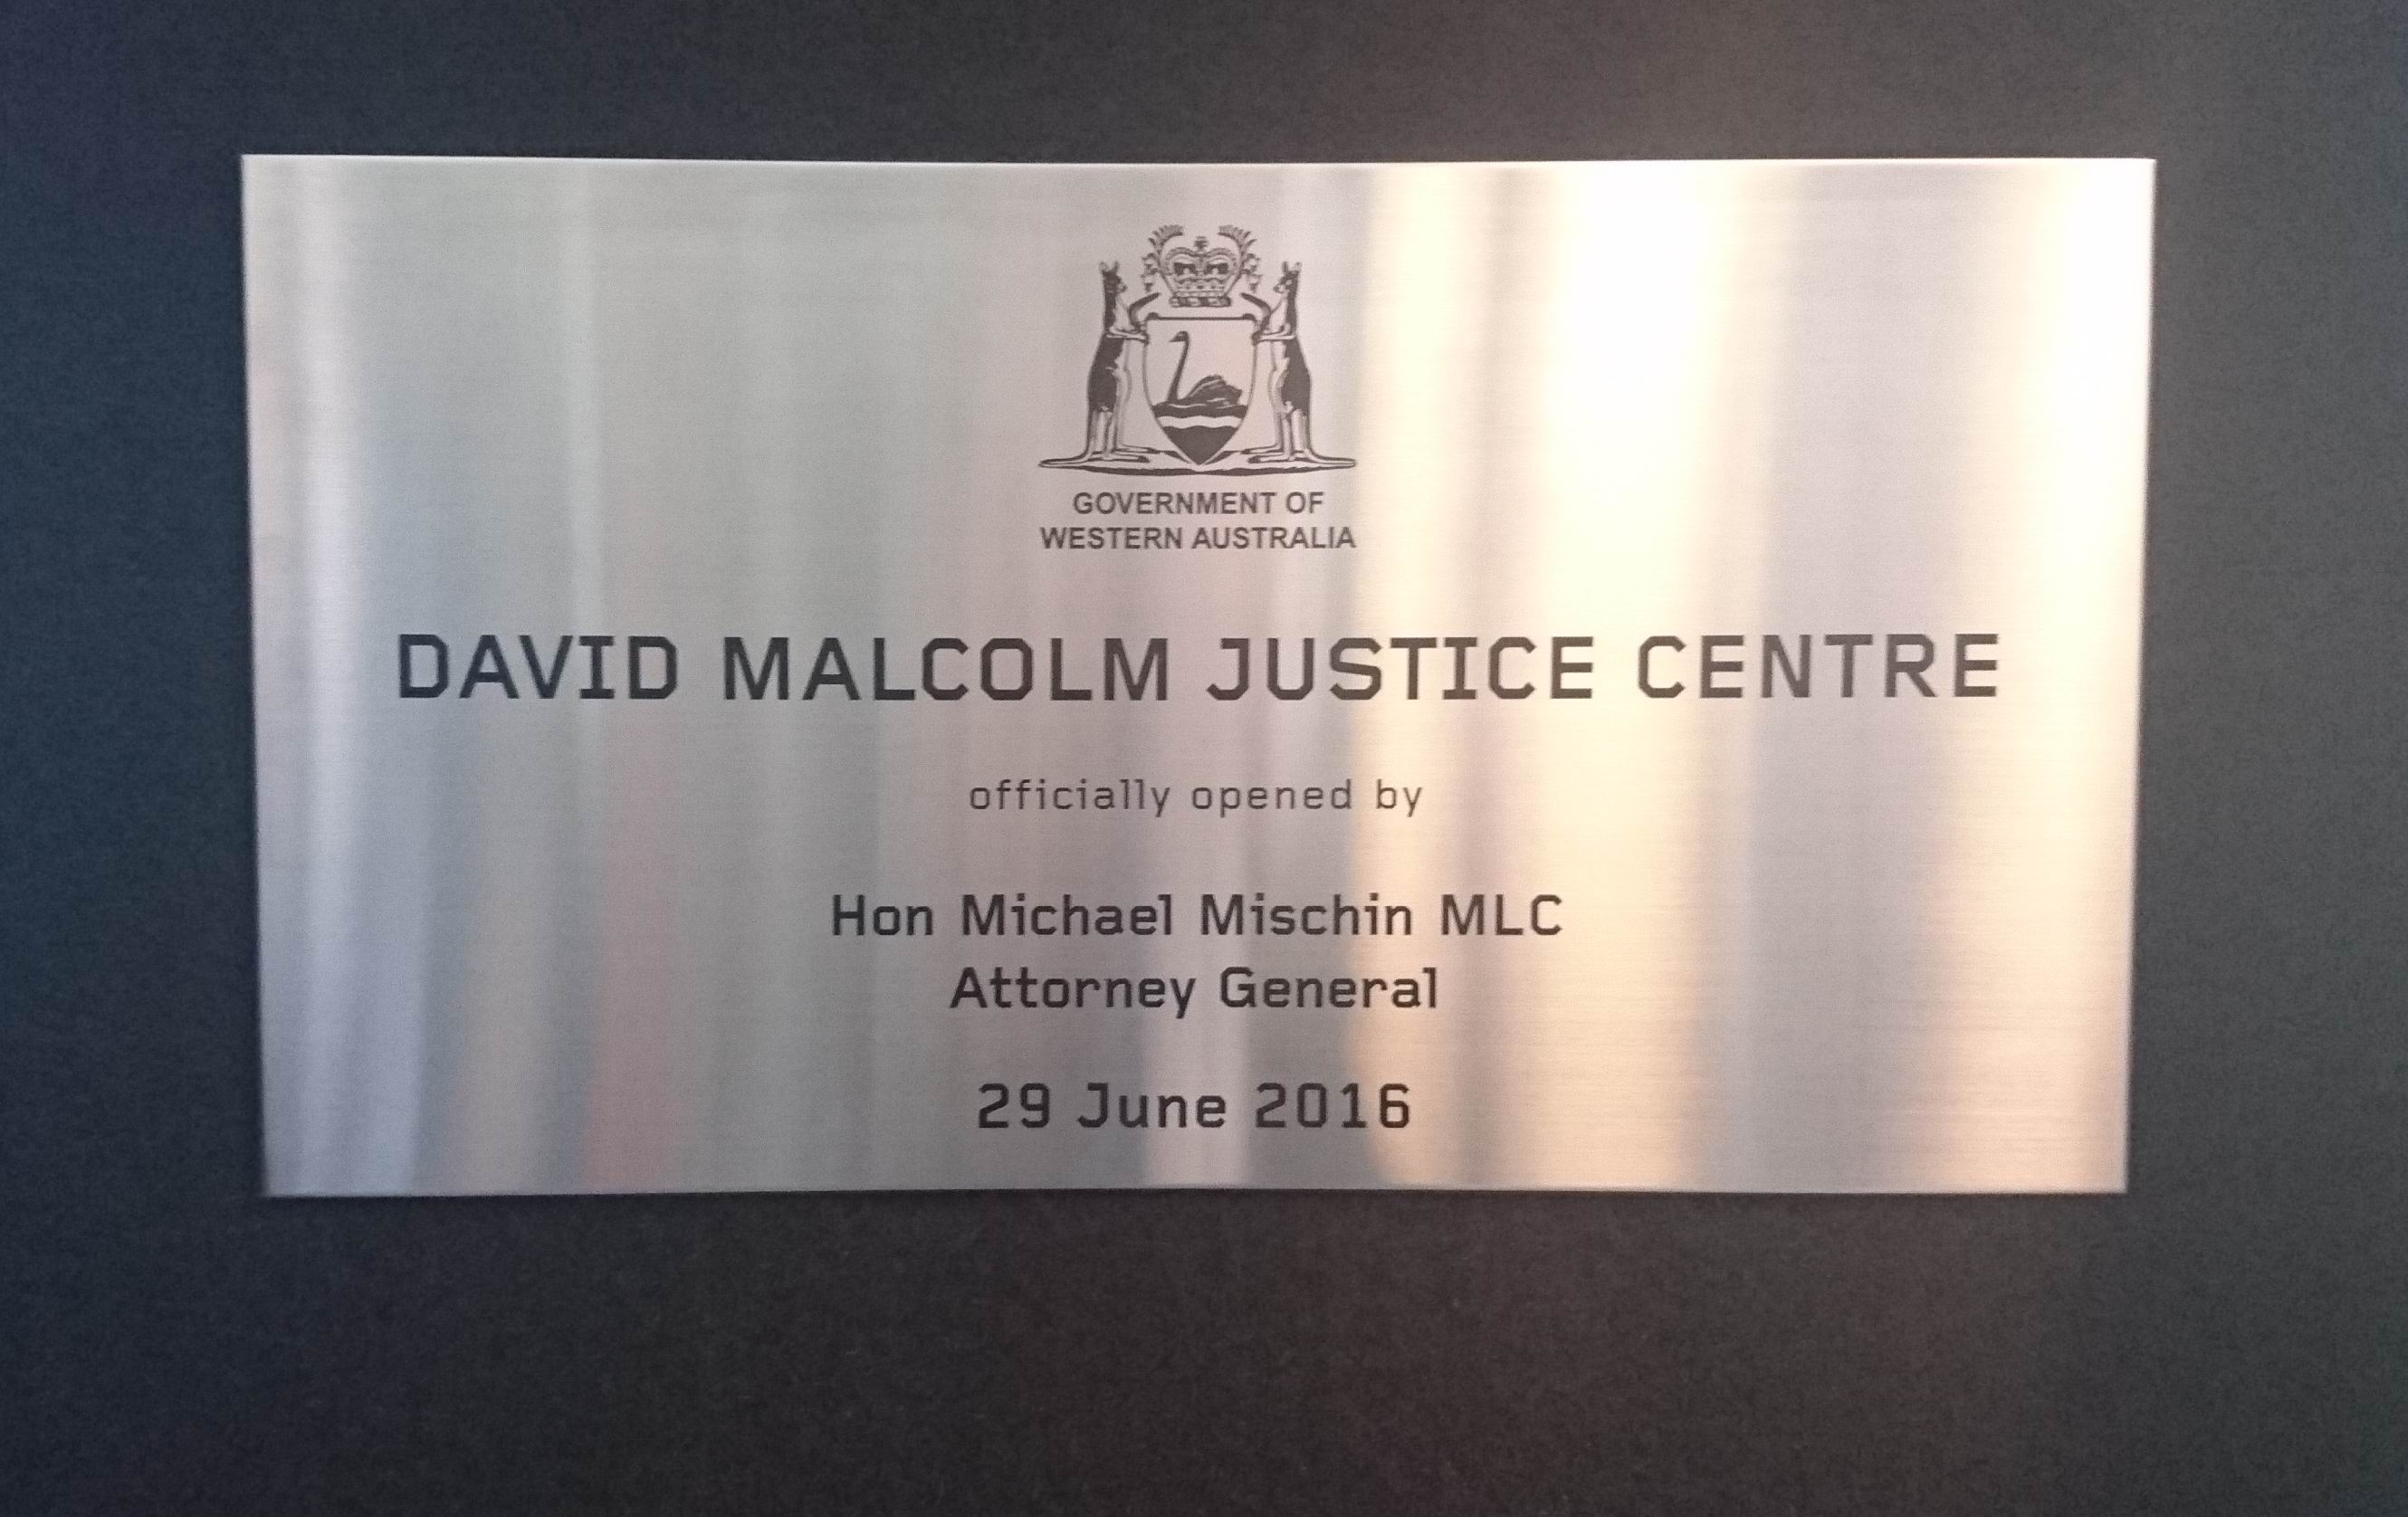 The plaque unveiled by the Attorney General on Wednesday.